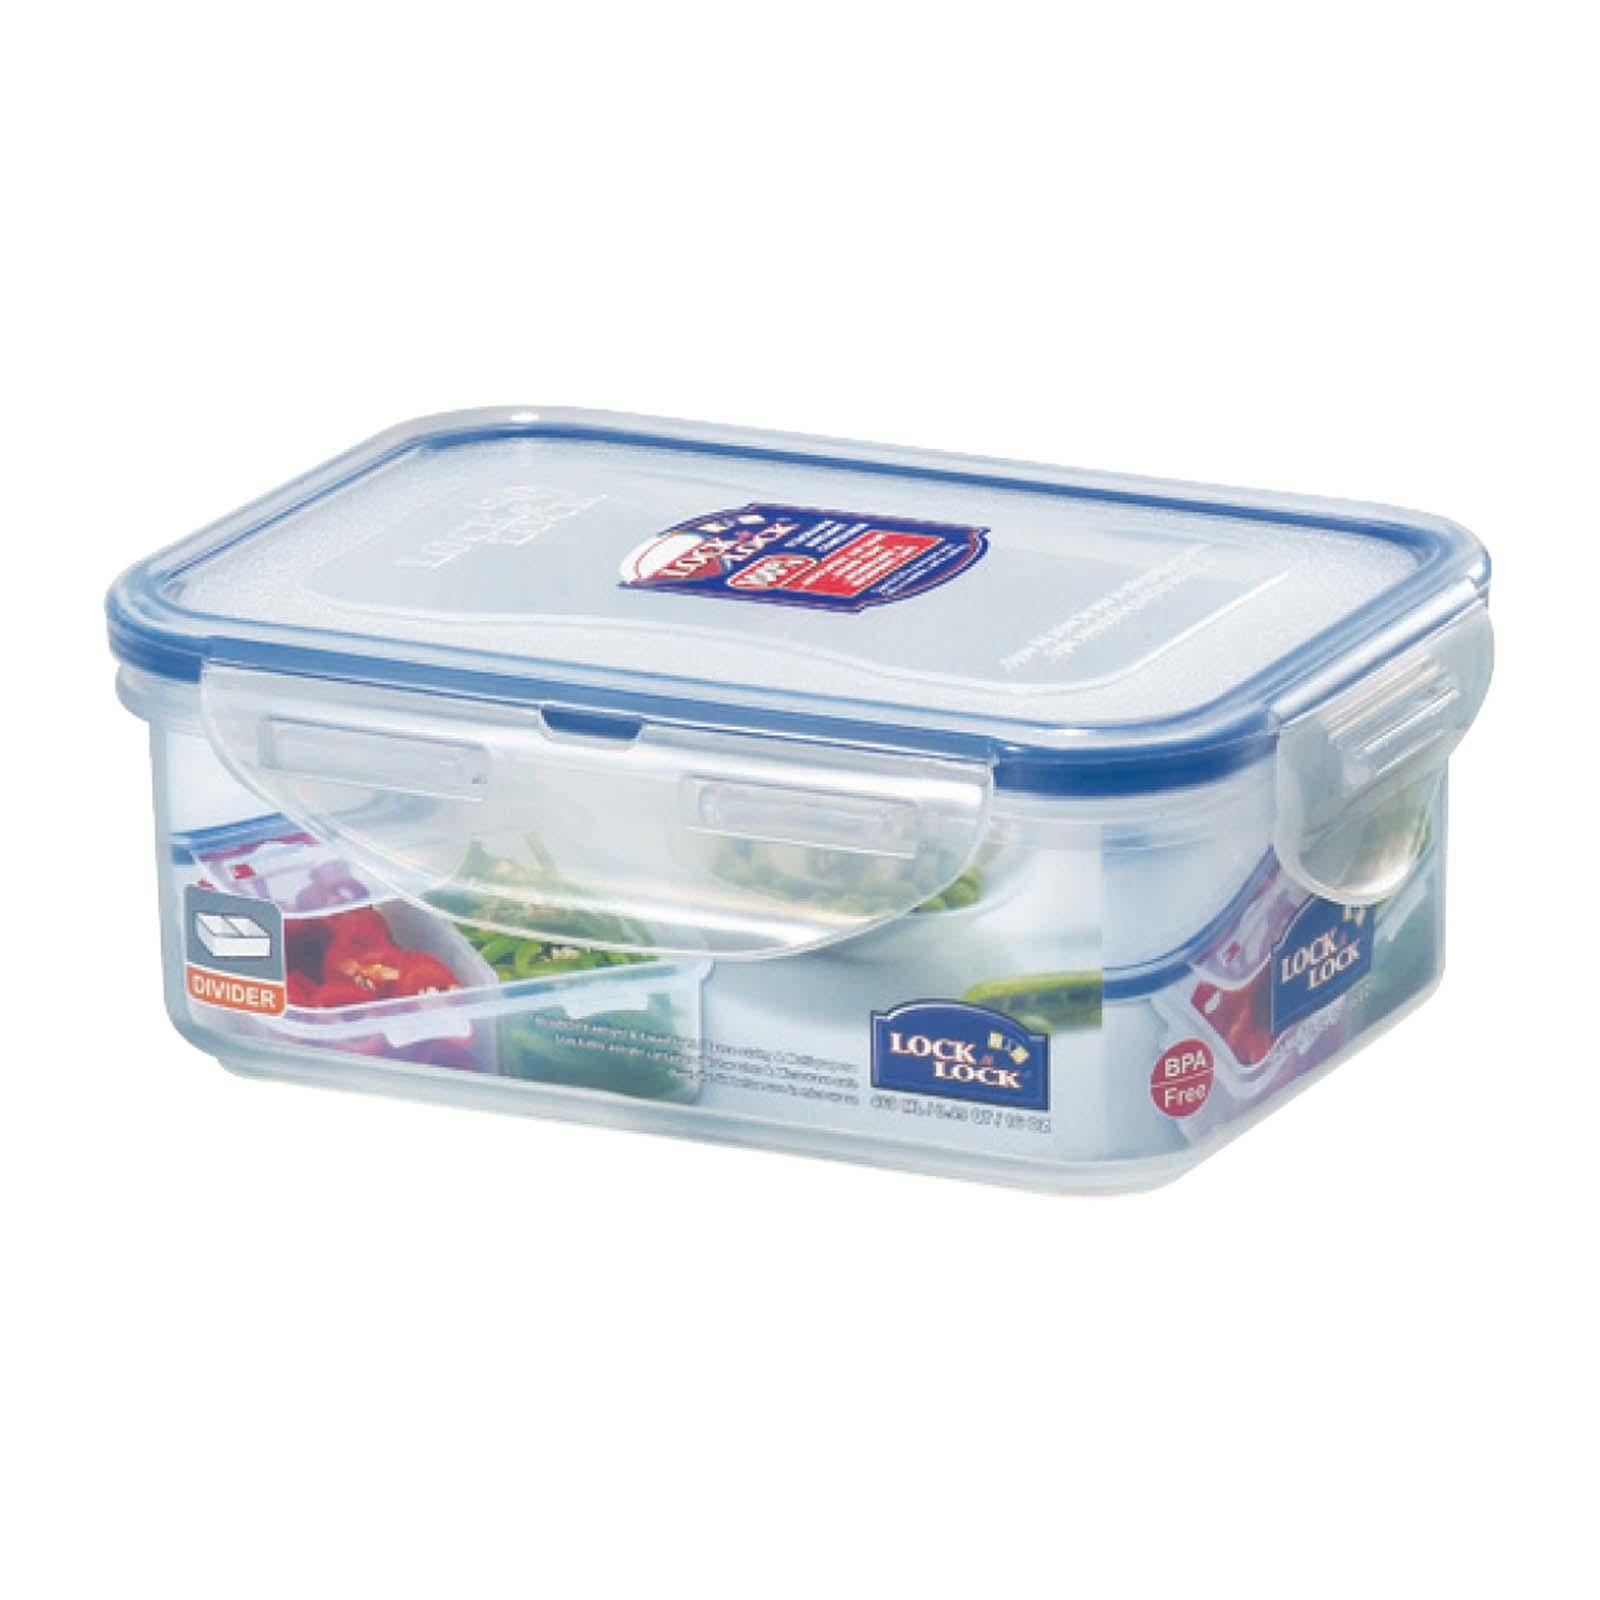 Lock & Lock Rectangular Classic Food Container 350ml With Divider